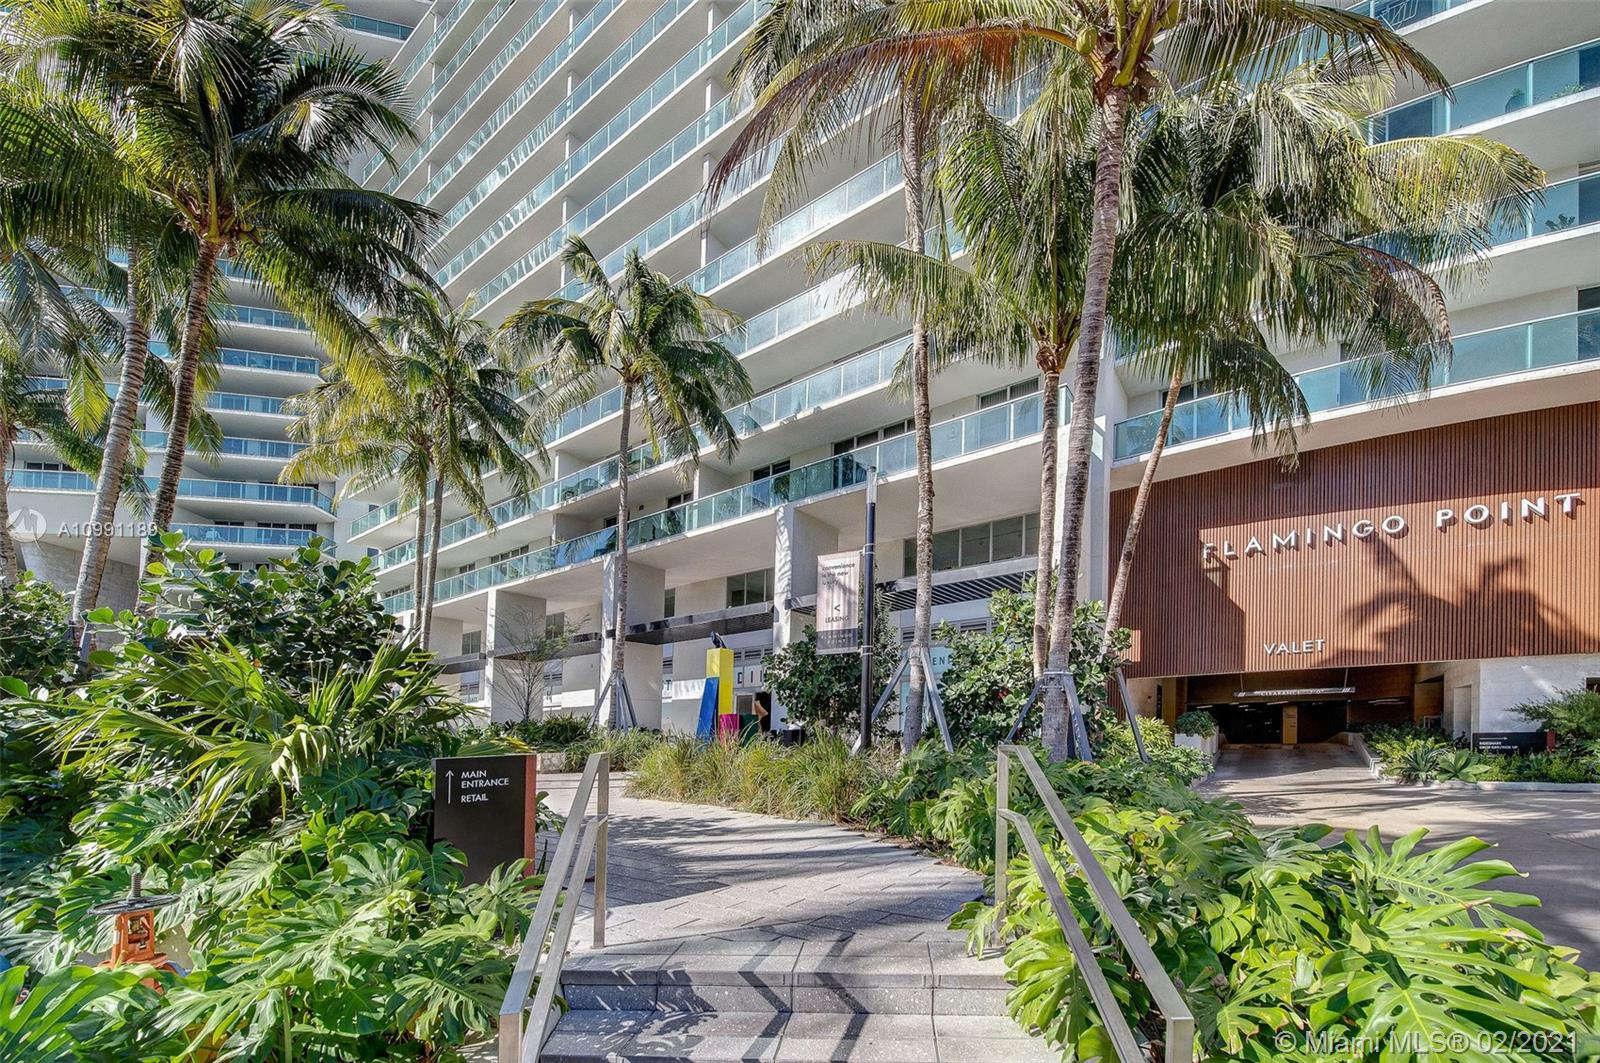 Flamingo South Beach #C-1206 - 1500 Bay Rd #C-1206, Miami Beach, FL 33139